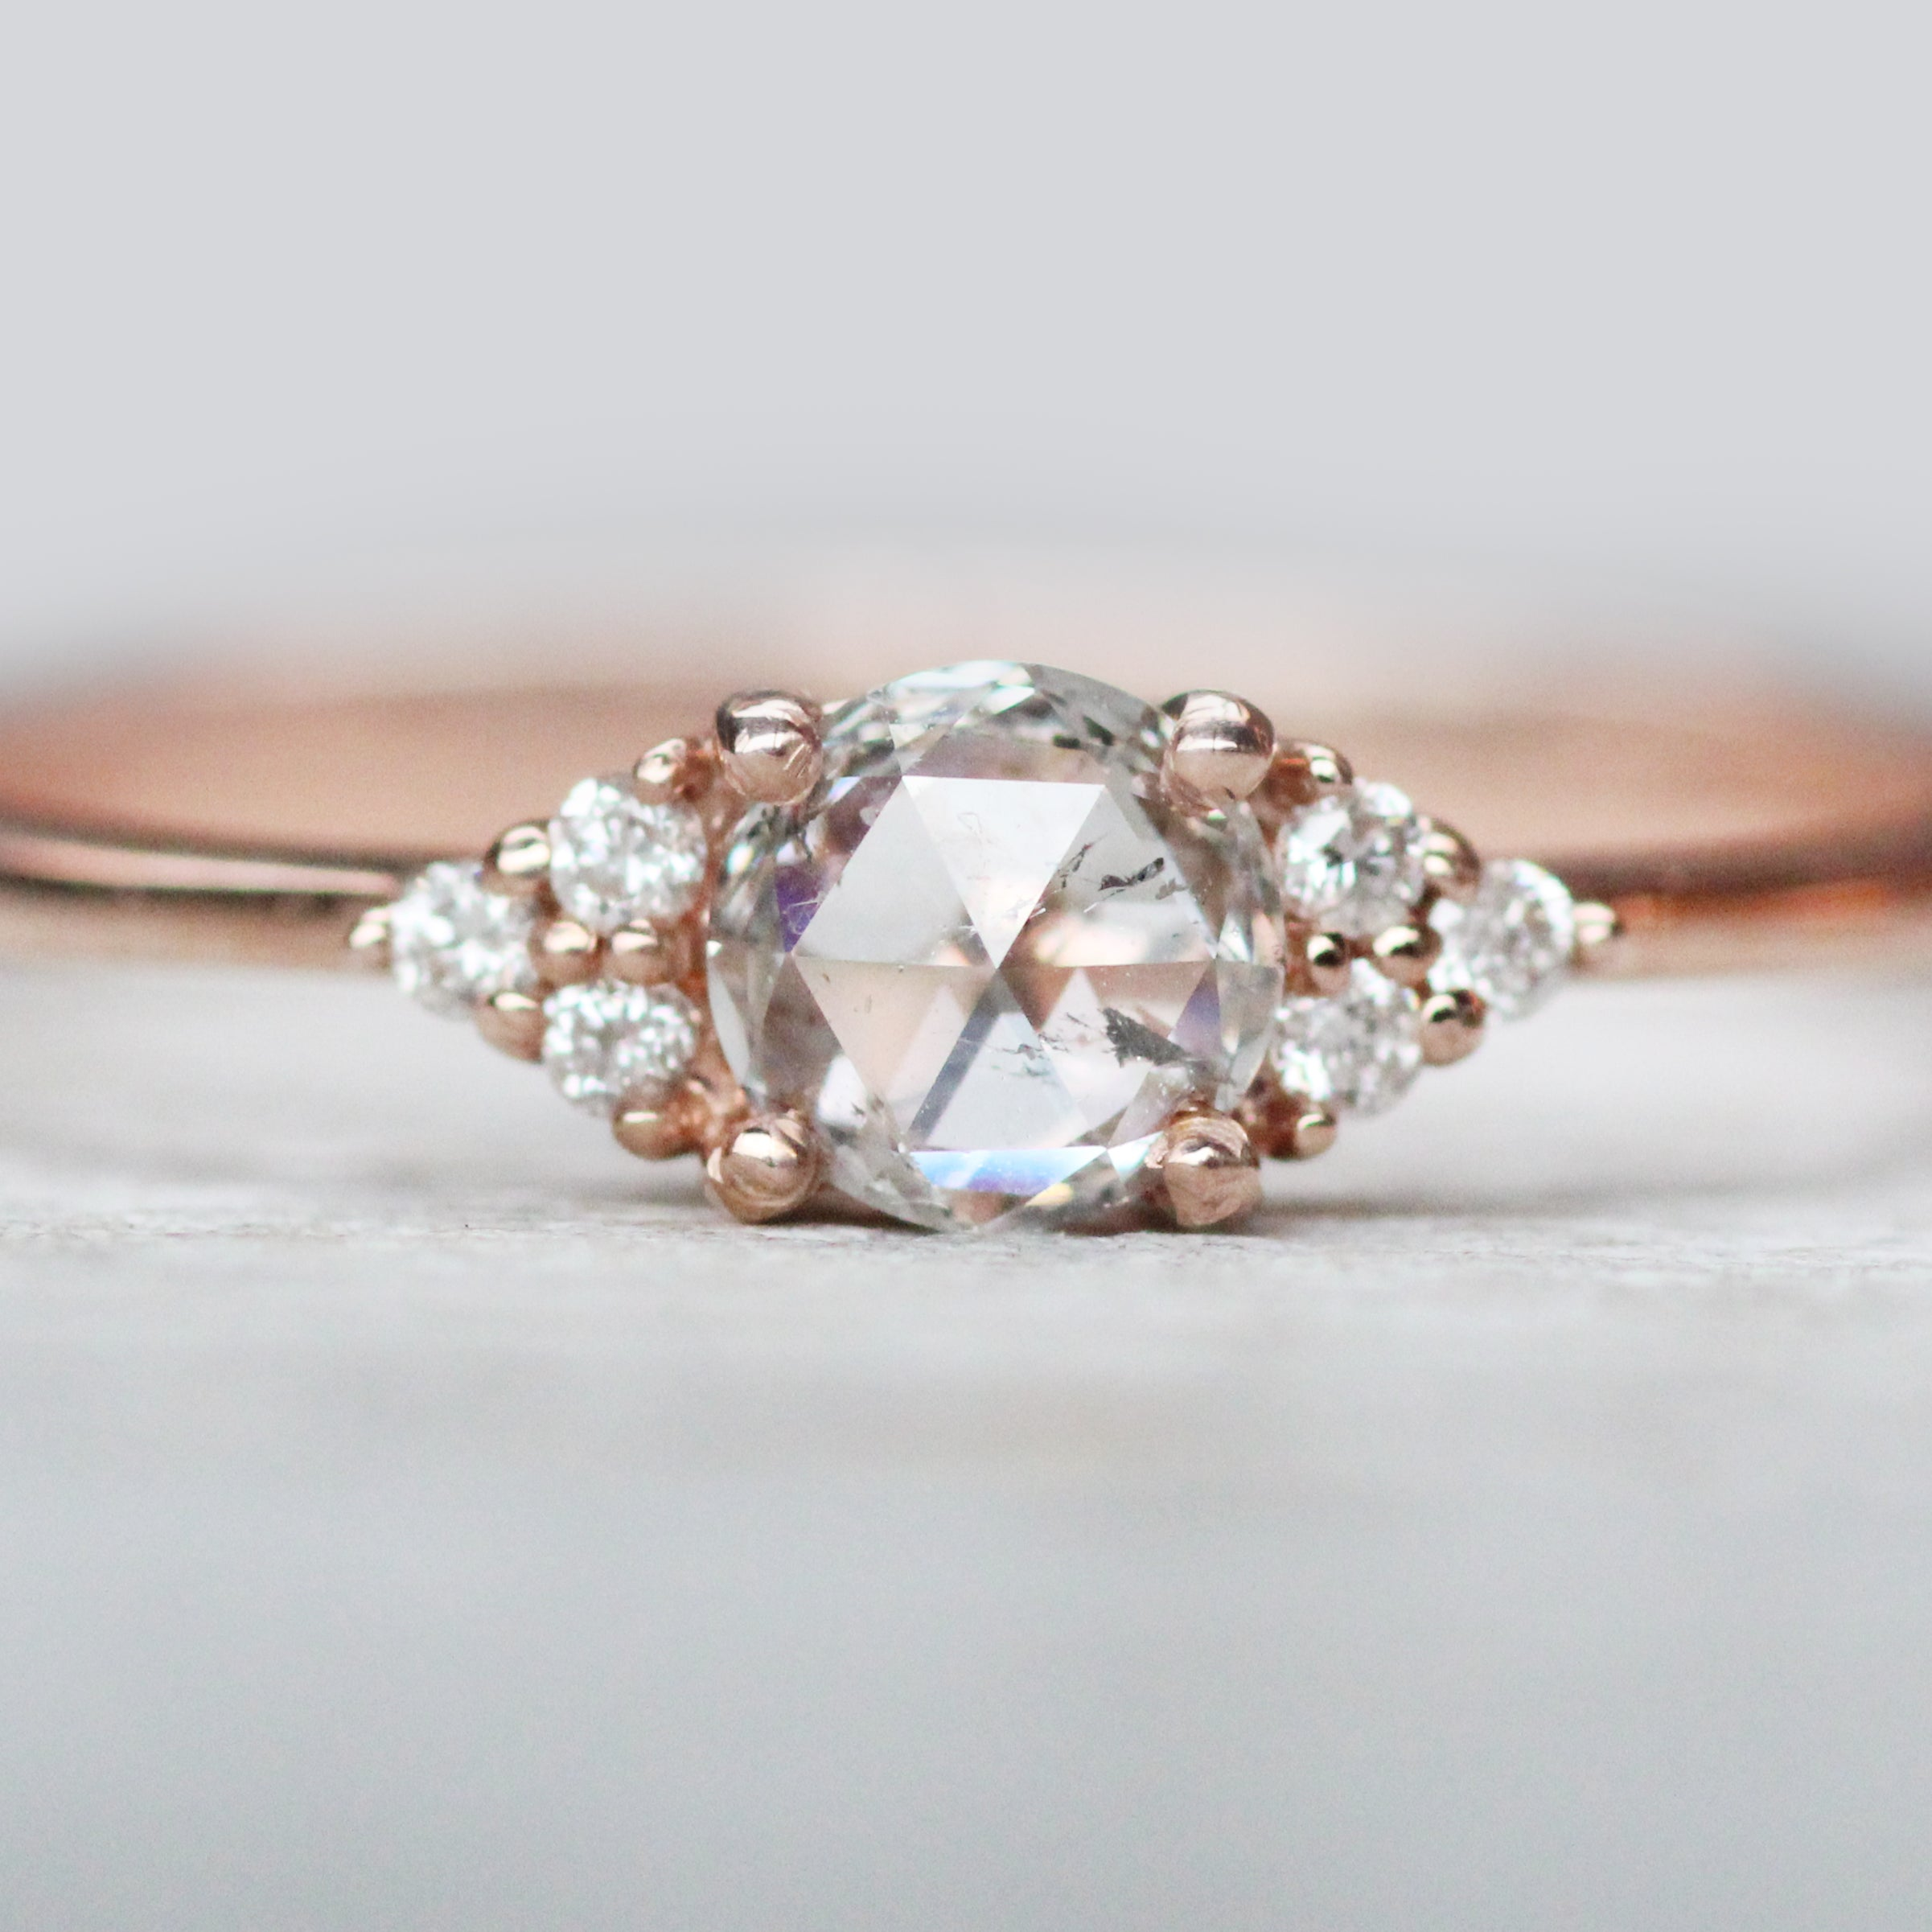 Imogene with clear rose cut diamond and accent diamonds in 10k rose gold - ready to size and ship